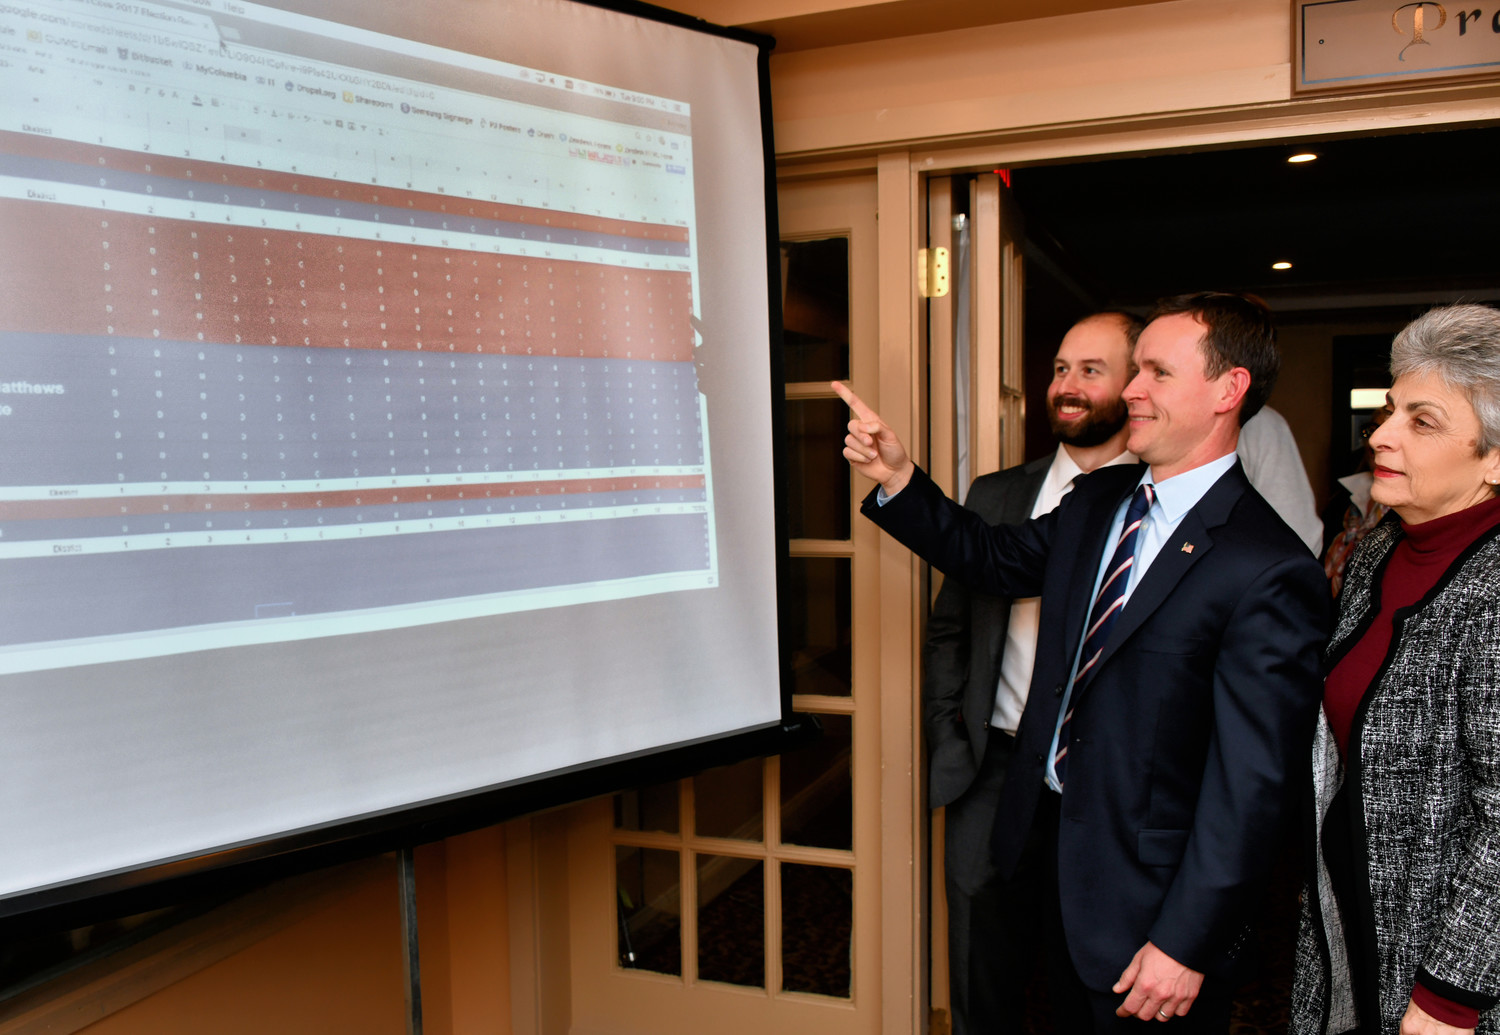 Councilman Nick DiLeo, Candidates Matt Connolly and Zefy Christopoulos look on as results are posted.